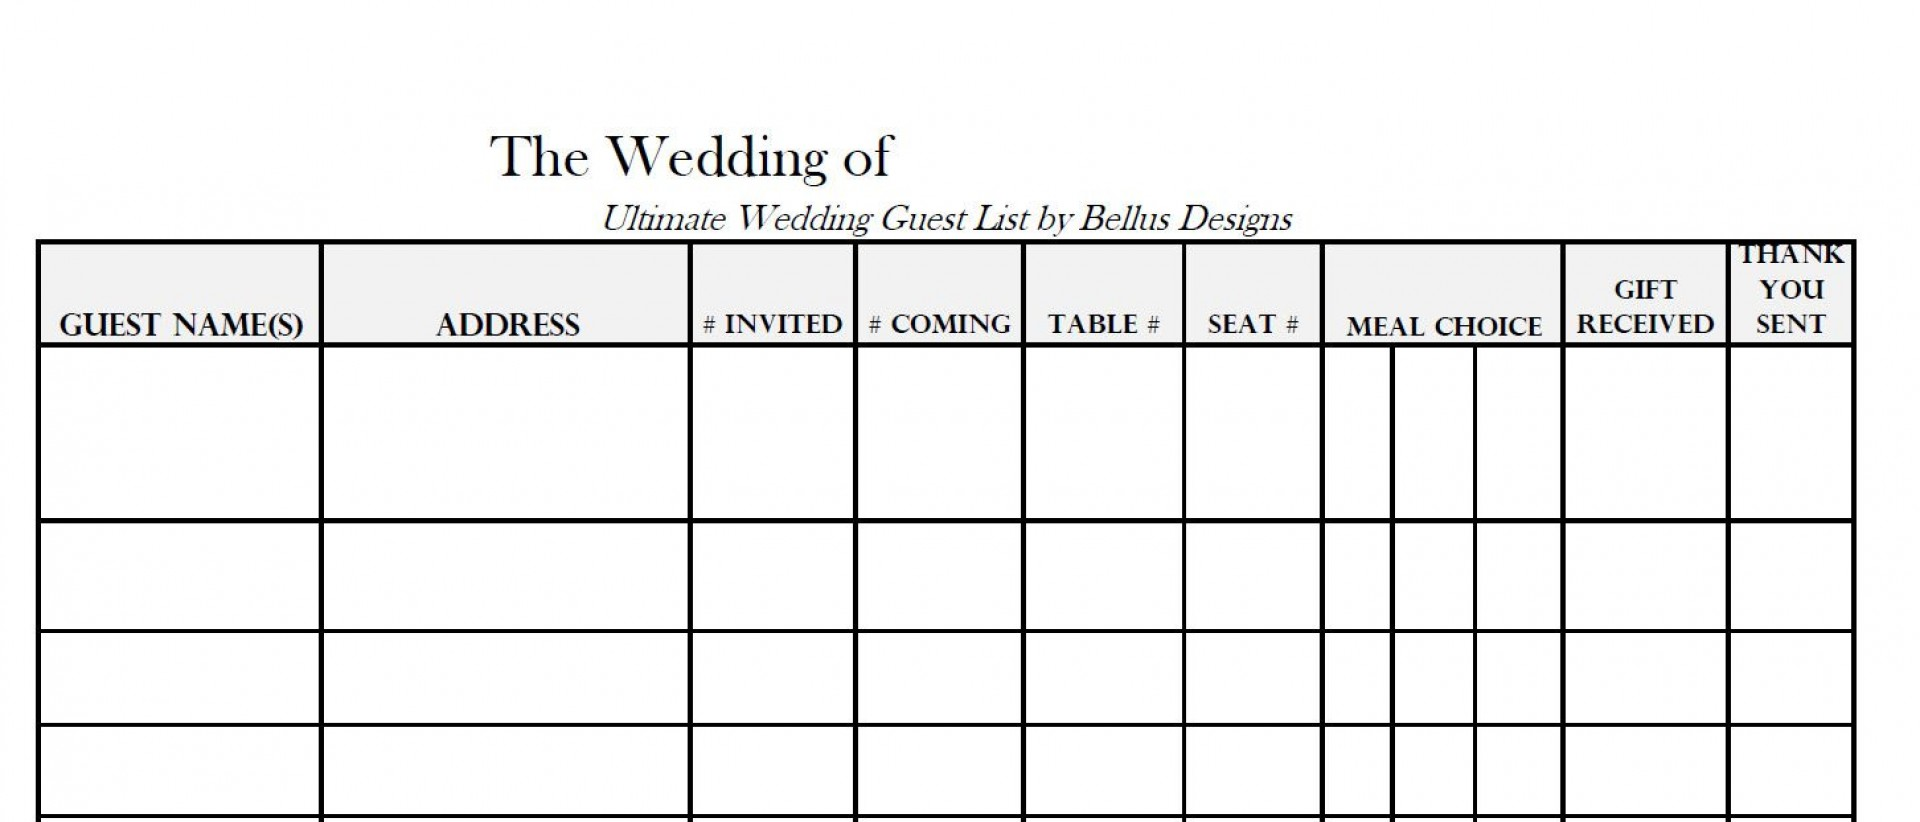 005 Awful Wedding Guest List Excel Spreadsheet Template Highest Clarity 1920